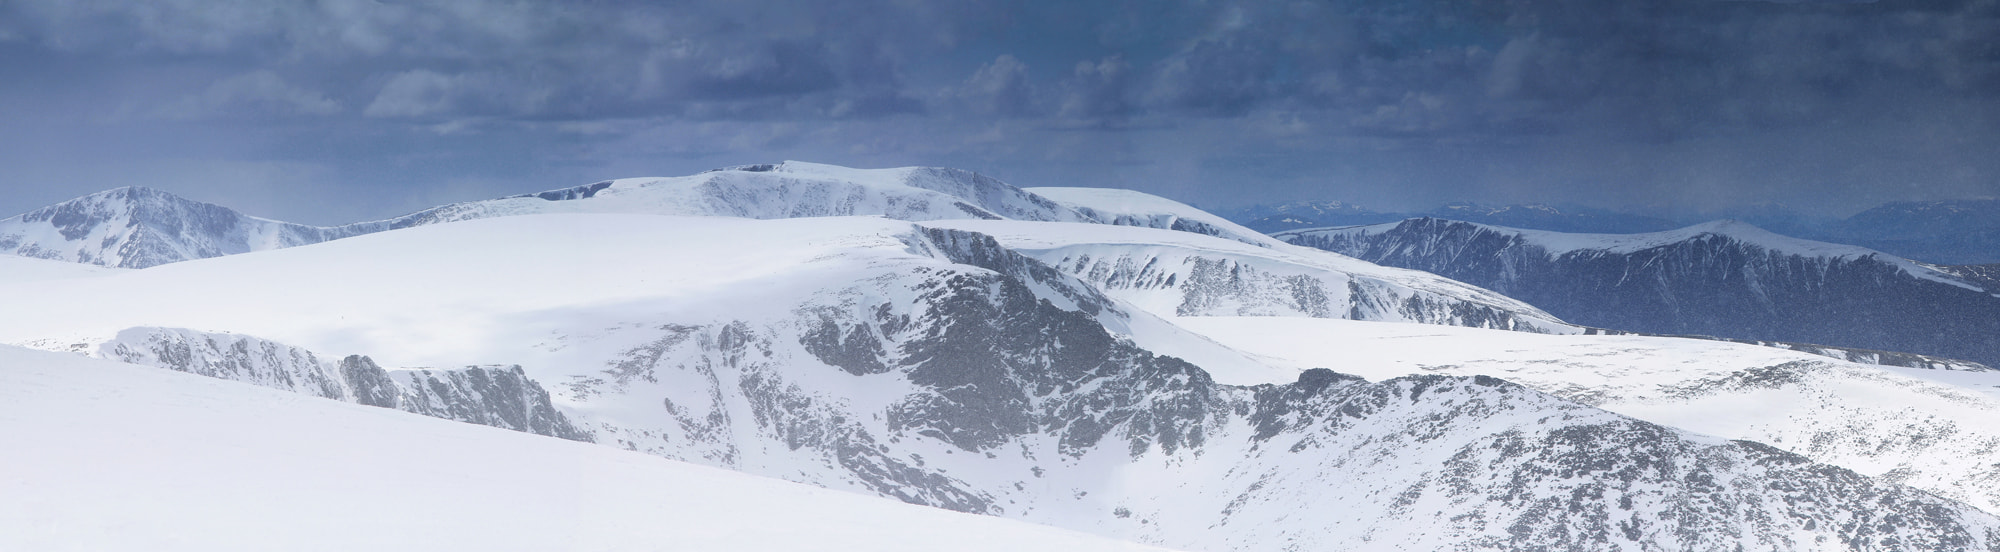 Photograph Cairngorms, scotland by Damian Kane on 500px